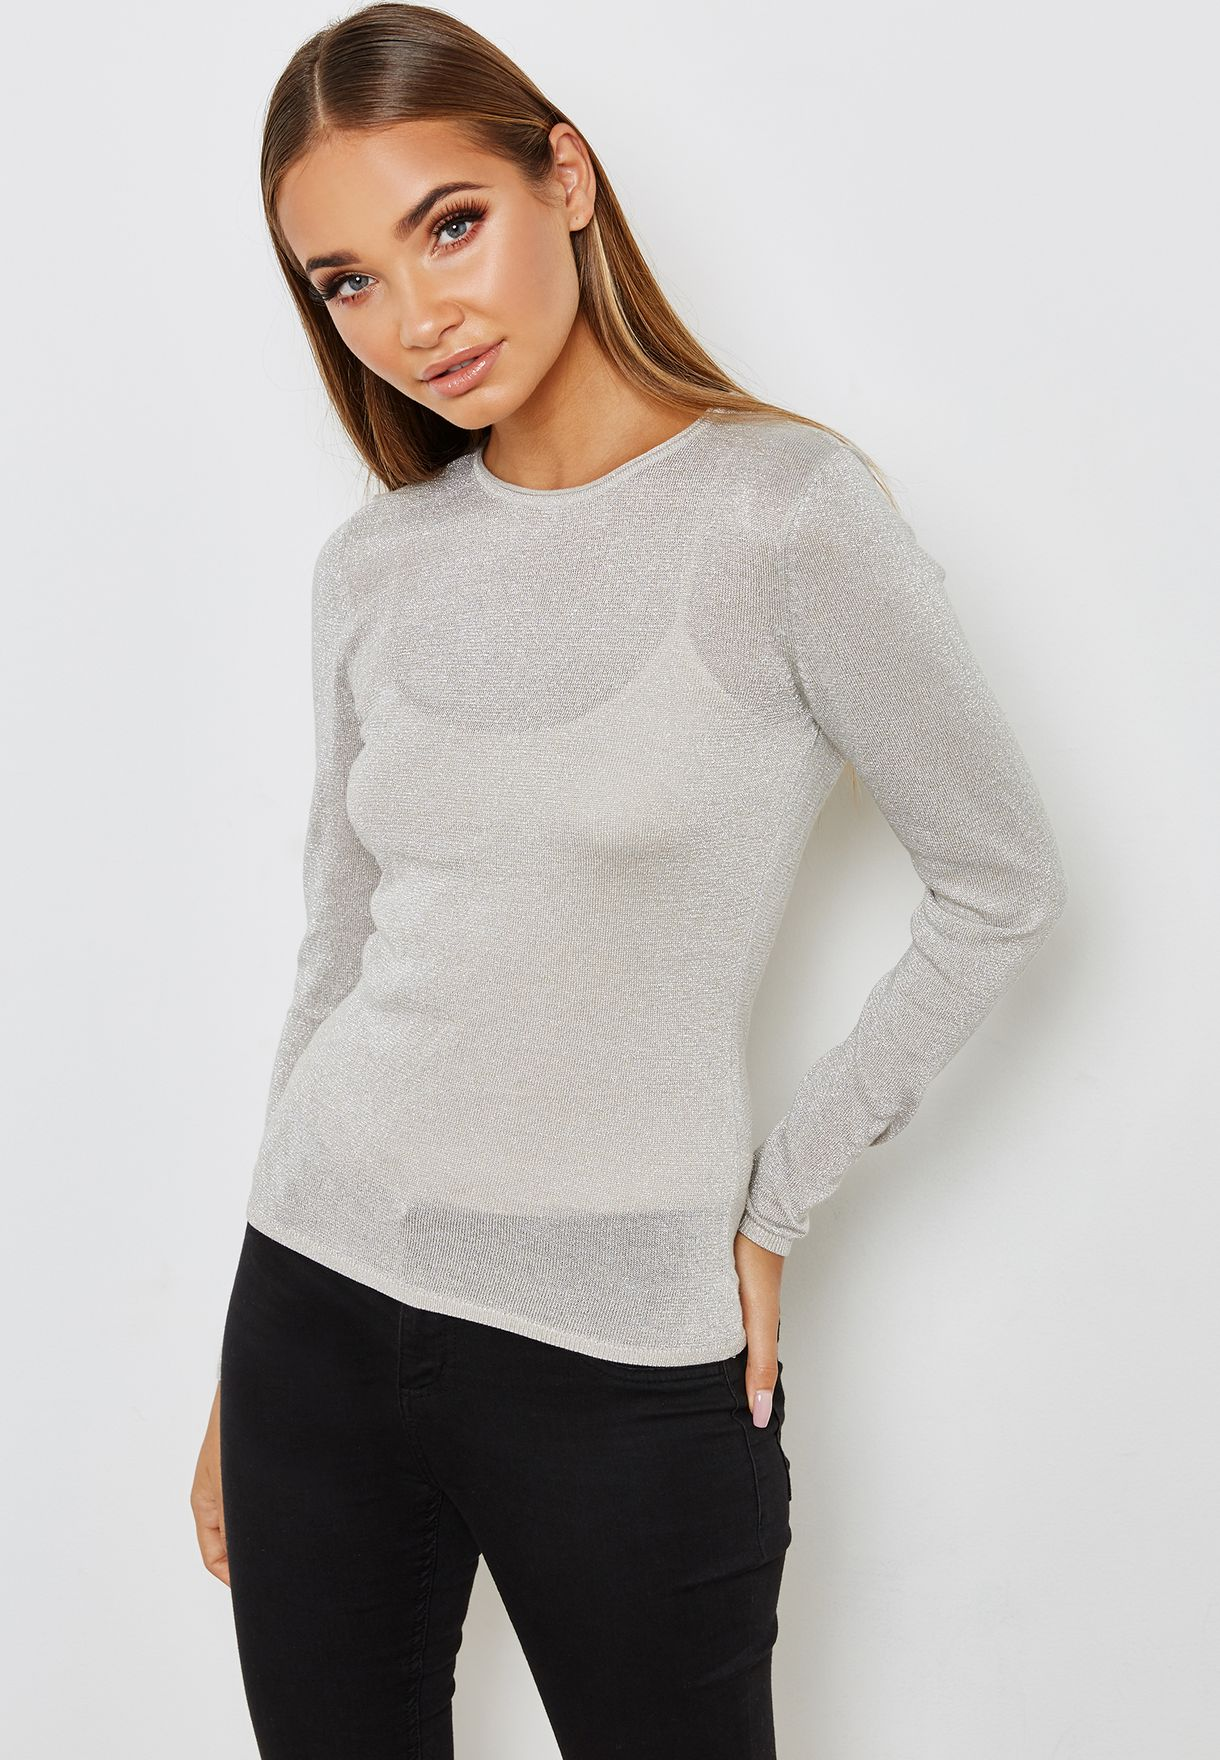 65ede19fed9 Shop Only grey Crew Neck Glitter Sweater 15155925 for Women in UAE ...